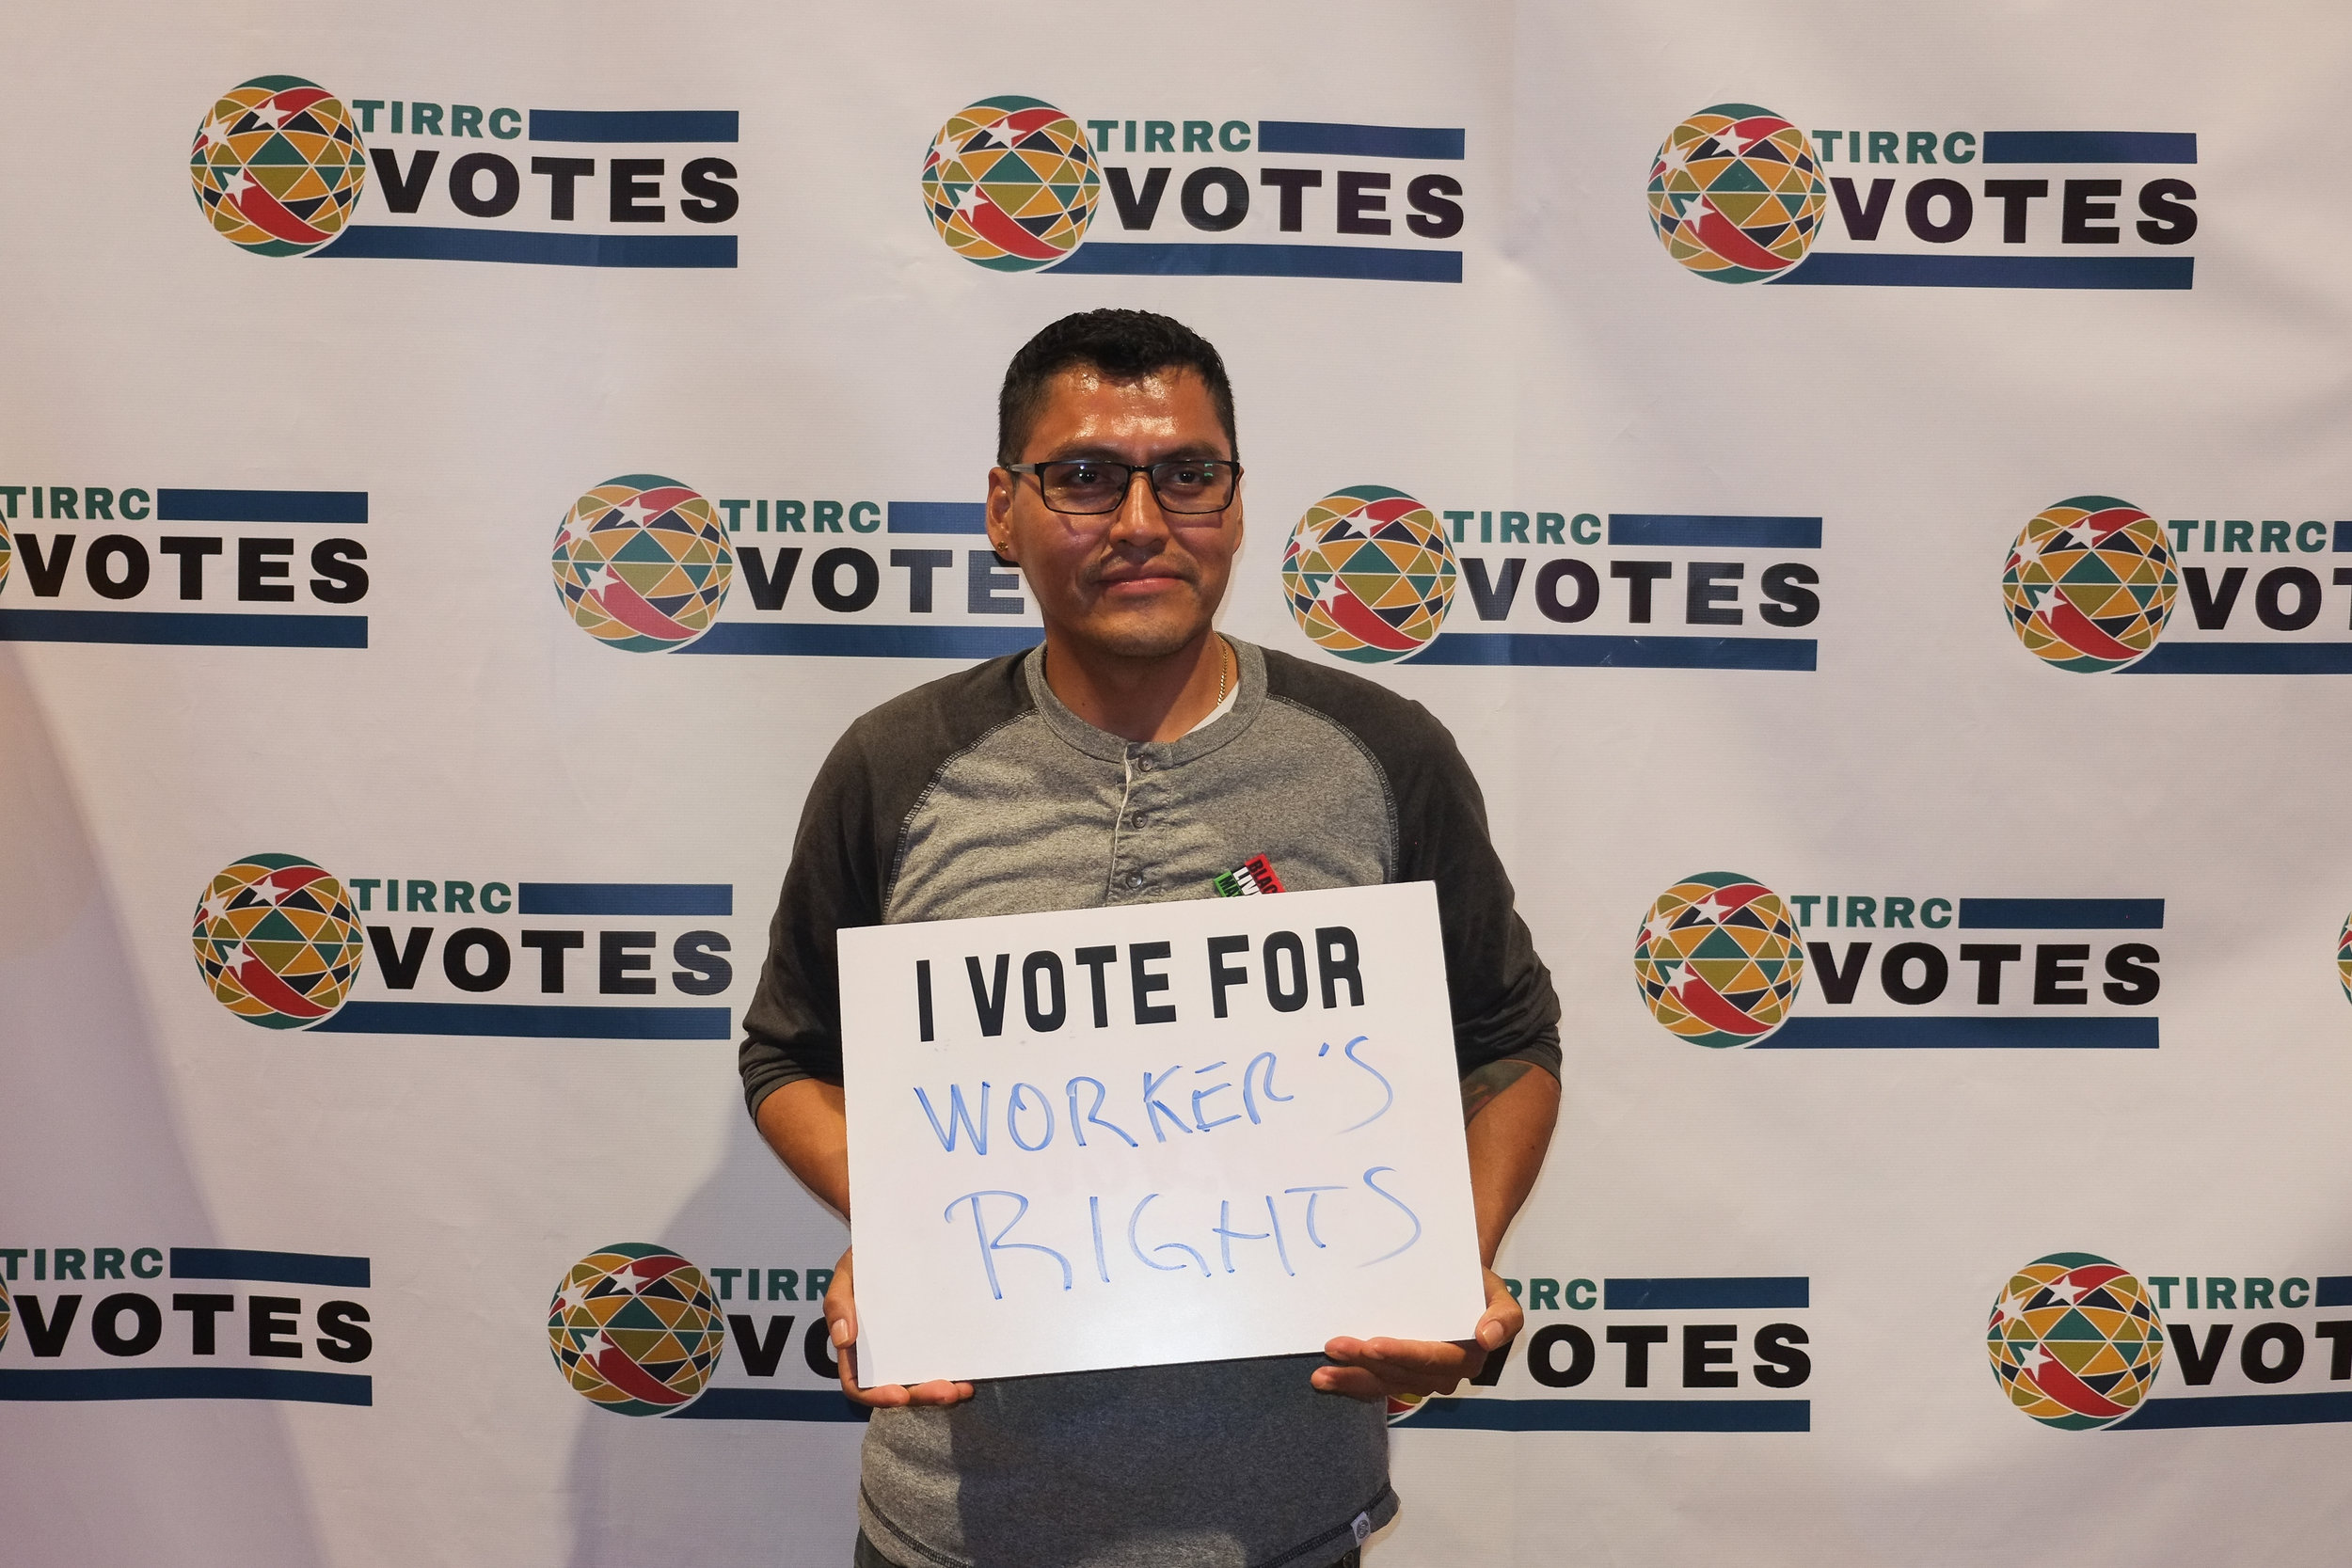 TIRRCVotes-PhotoBooth-64.jpg